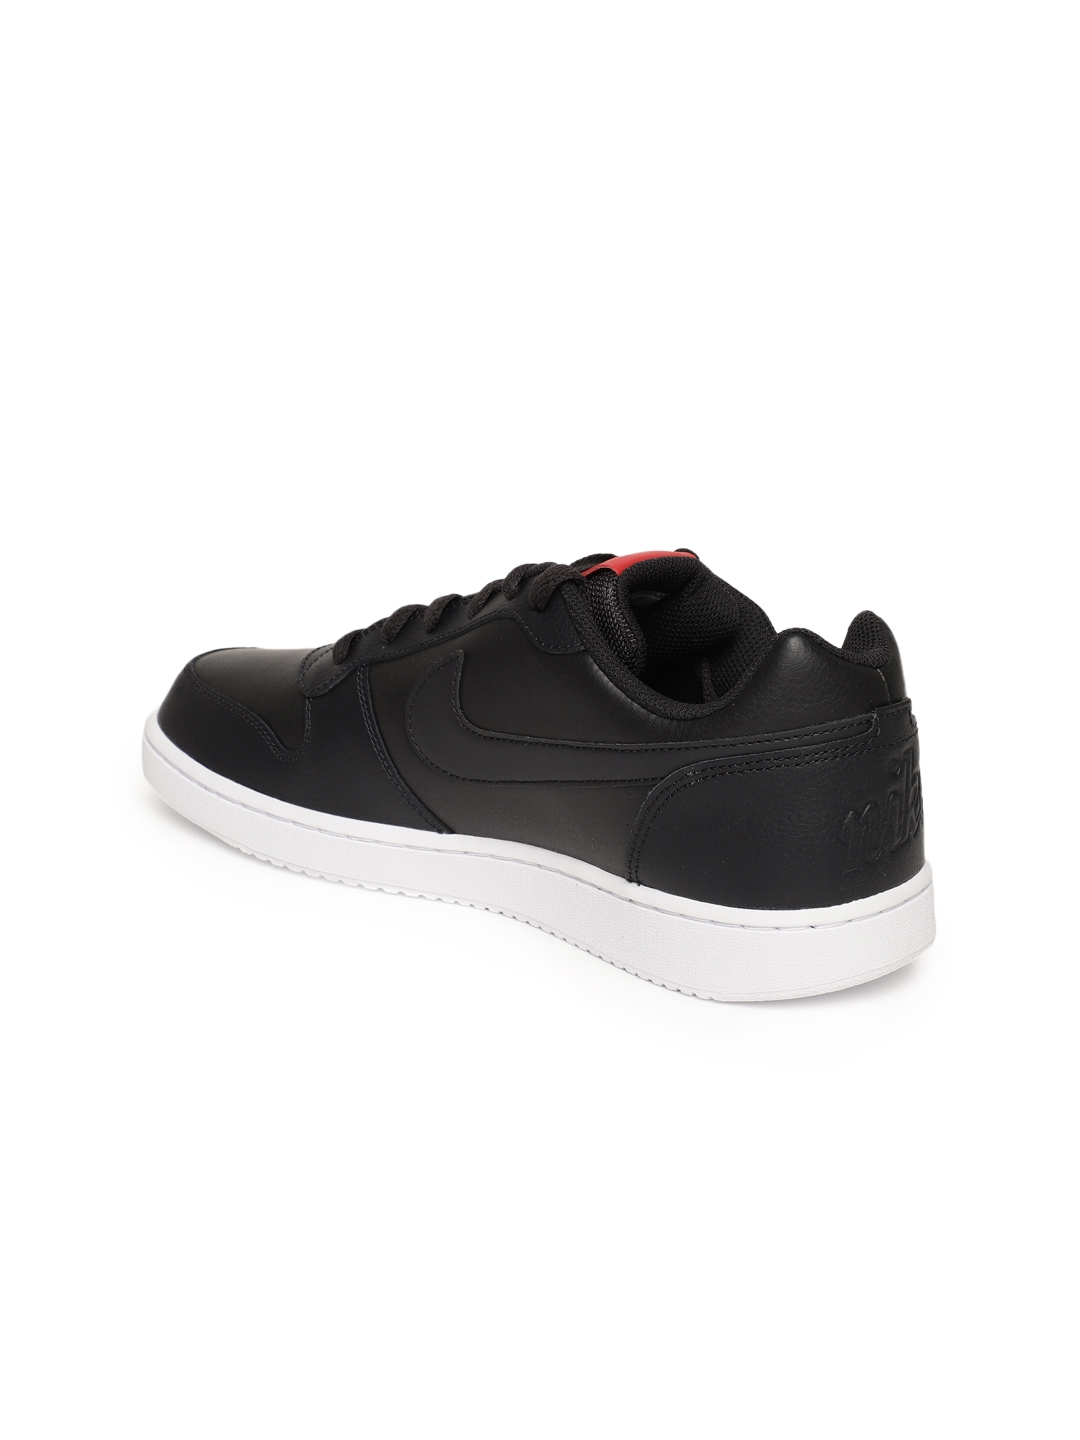 premium selection e37da 4a389 3887c93d-5d22-4e97-94ff-ae2a41e5ea071531722524482-Nike -Men-Charcoal-Grey-EBERNON-LOW-Sneakers-7981531722524358-2.jpg